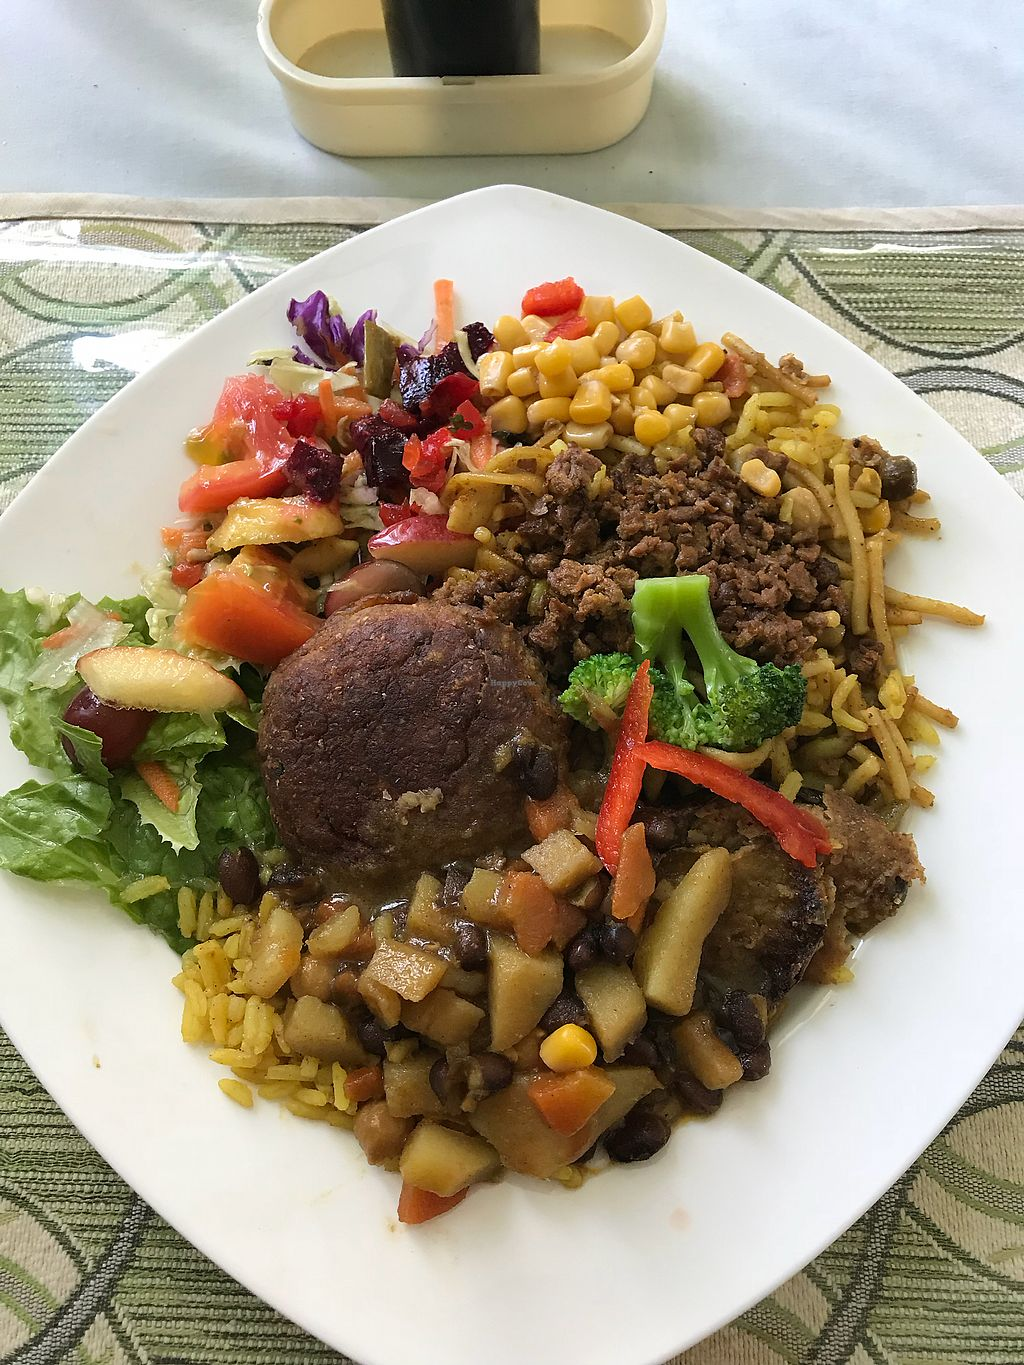 """Photo of Vegan Cottage  by <a href=""""/members/profile/BlissAlexandra"""">BlissAlexandra</a> <br/>Delicious ?  <br/> January 31, 2018  - <a href='/contact/abuse/image/22258/353159'>Report</a>"""